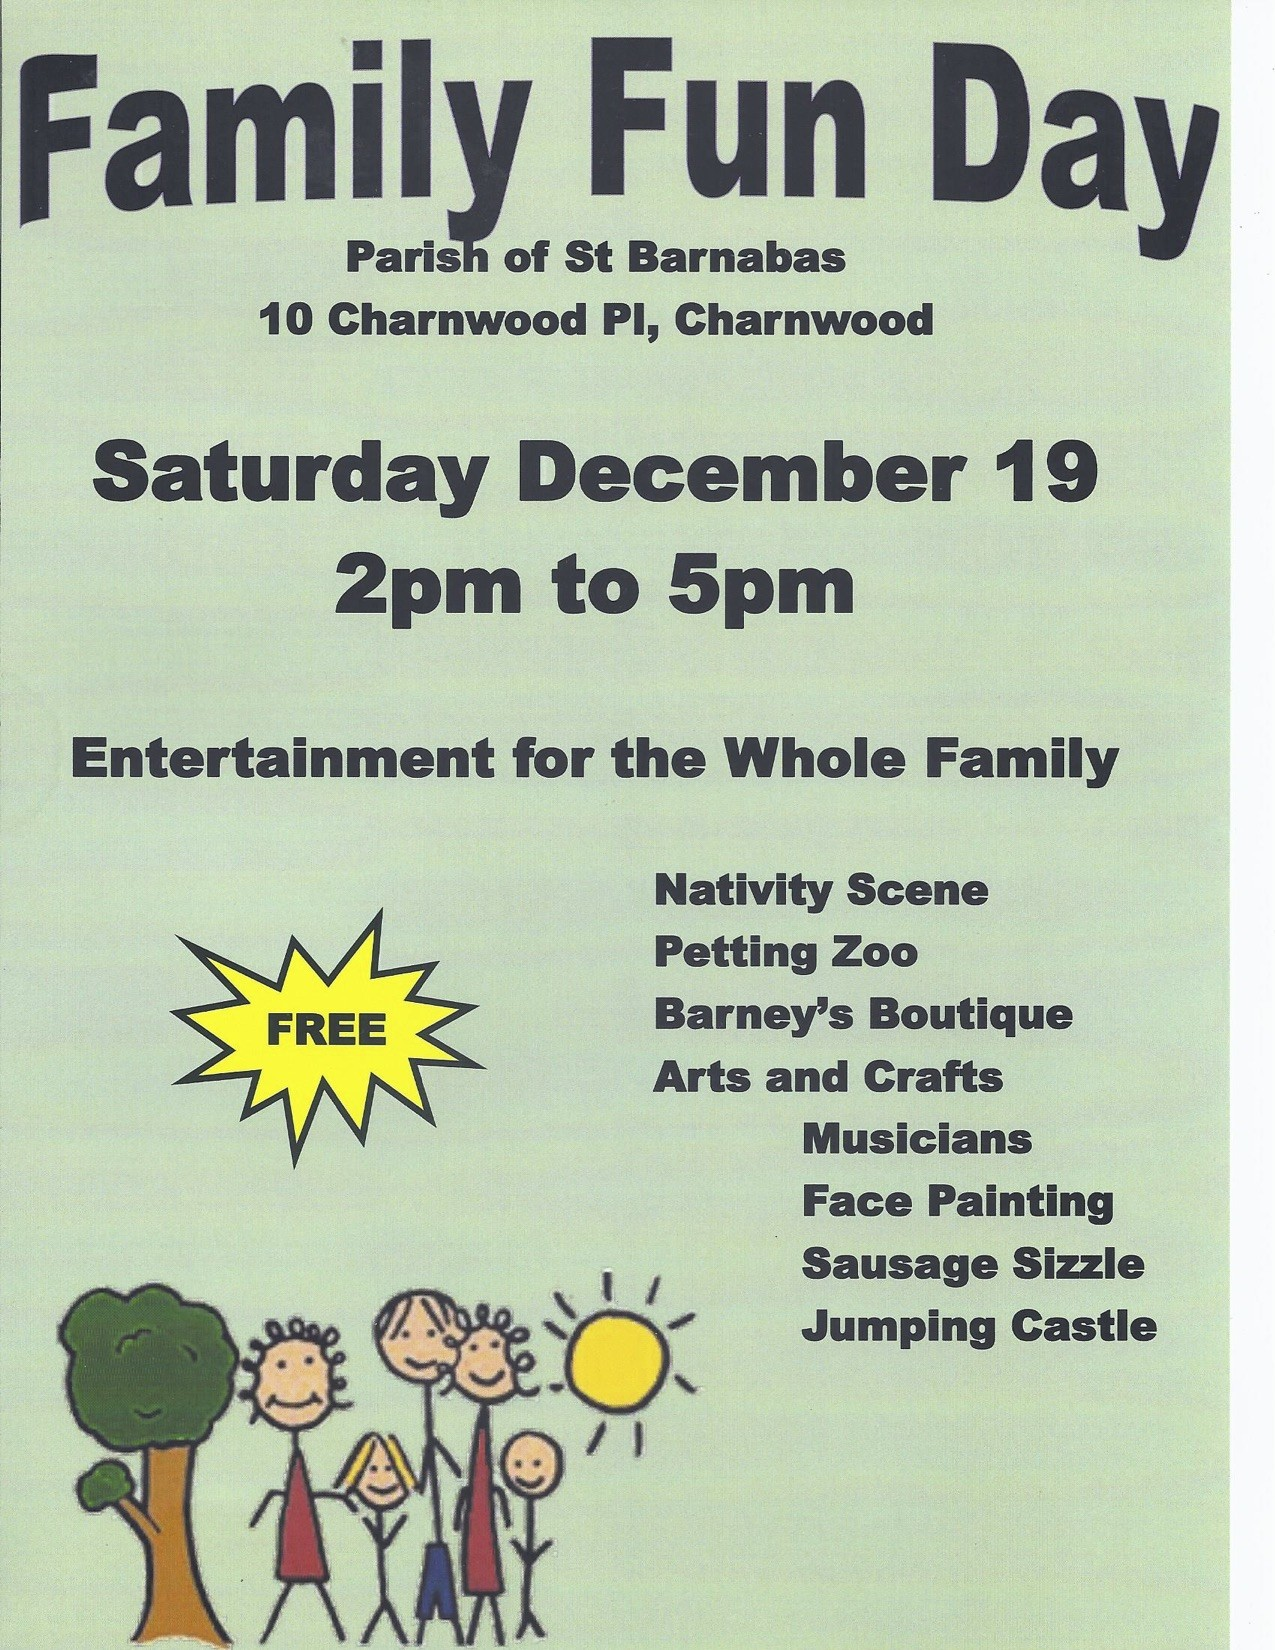 St Barnabas Family Fun Day